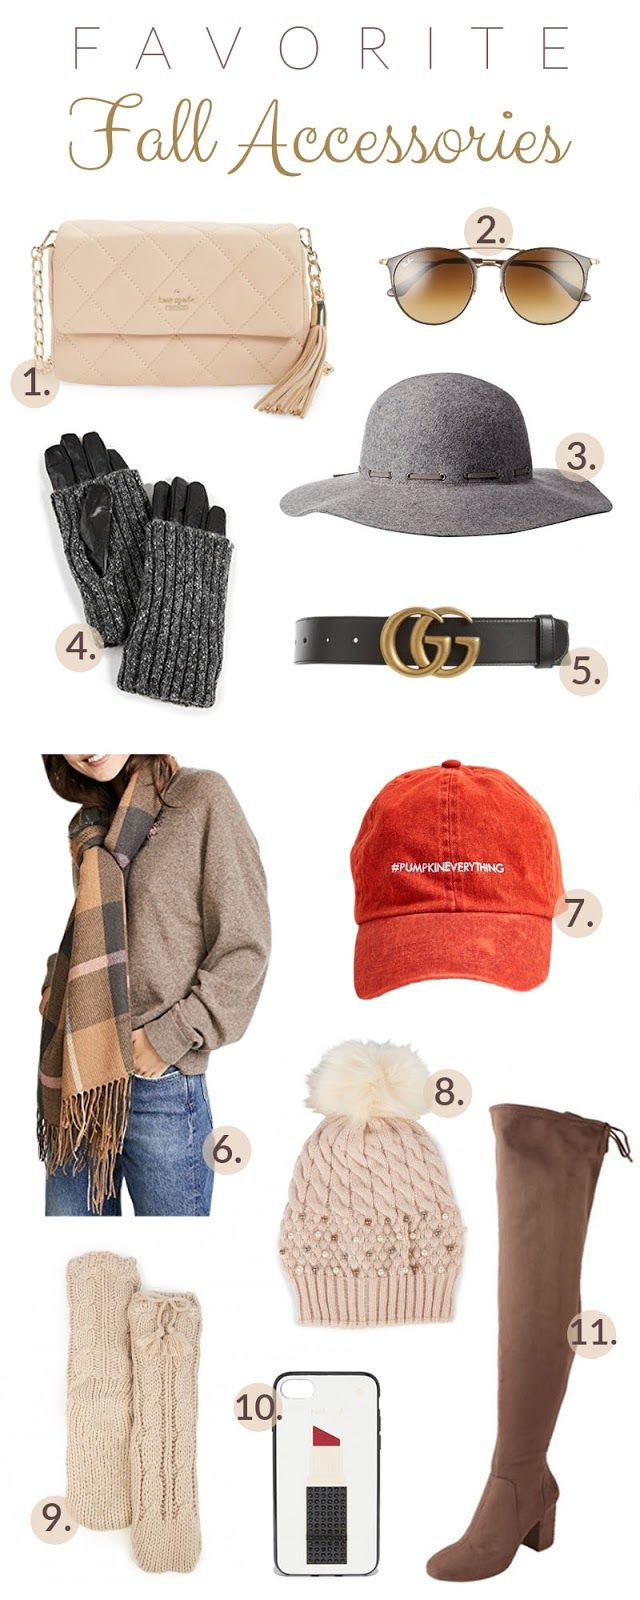 My 11 Favorite Fall Accessories! Totally obsessed with that felt hat! Oh and the plaid scarf too!   #fallaccessories #fallmusthaves #fallfashion